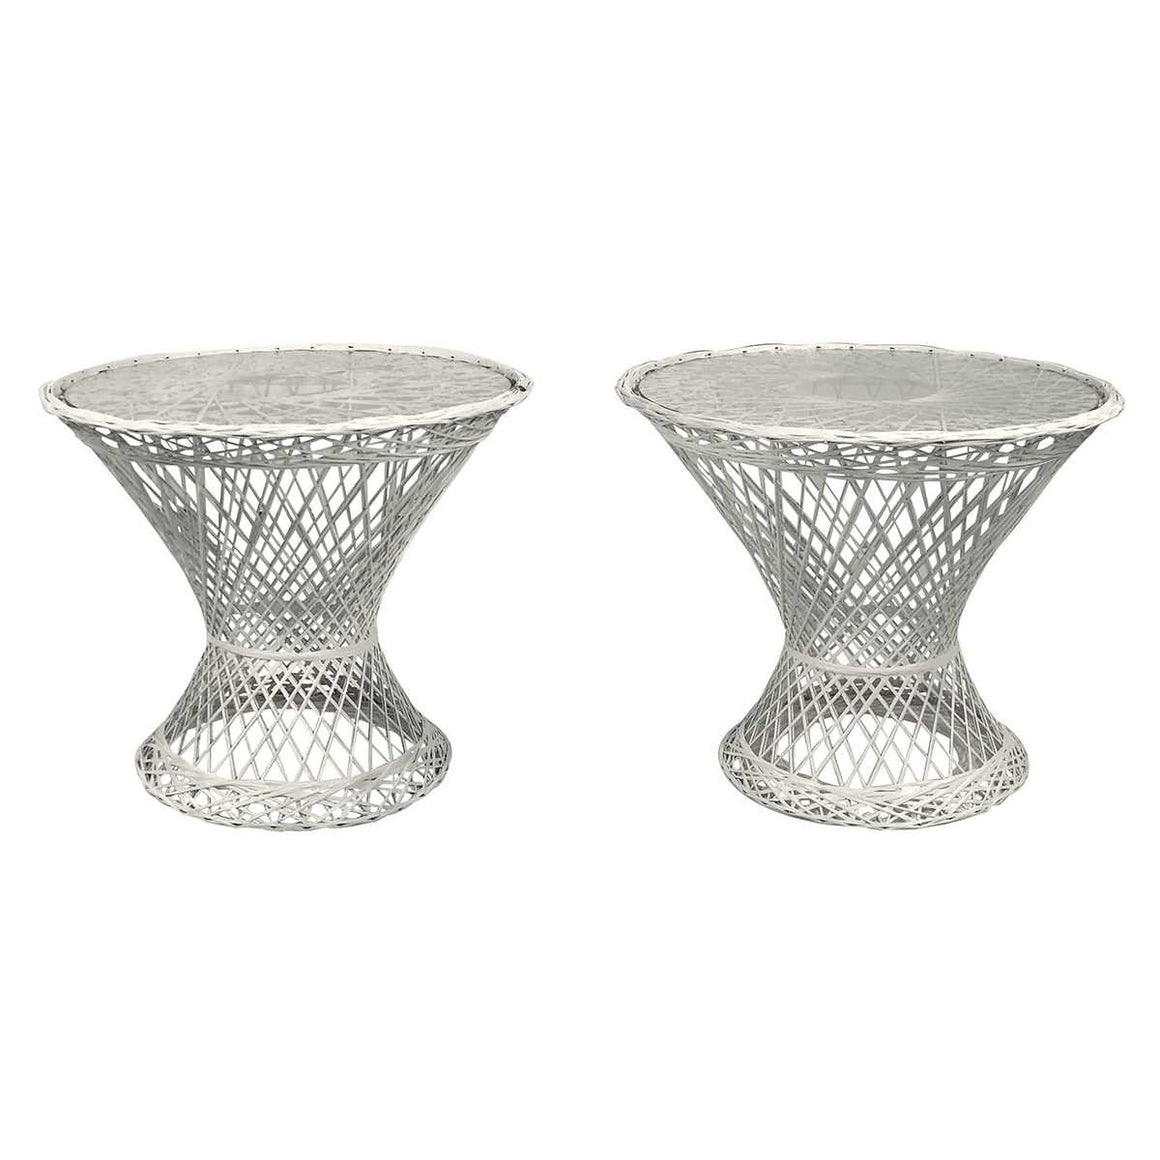 Woodard Furniture Co. Patio End Tables